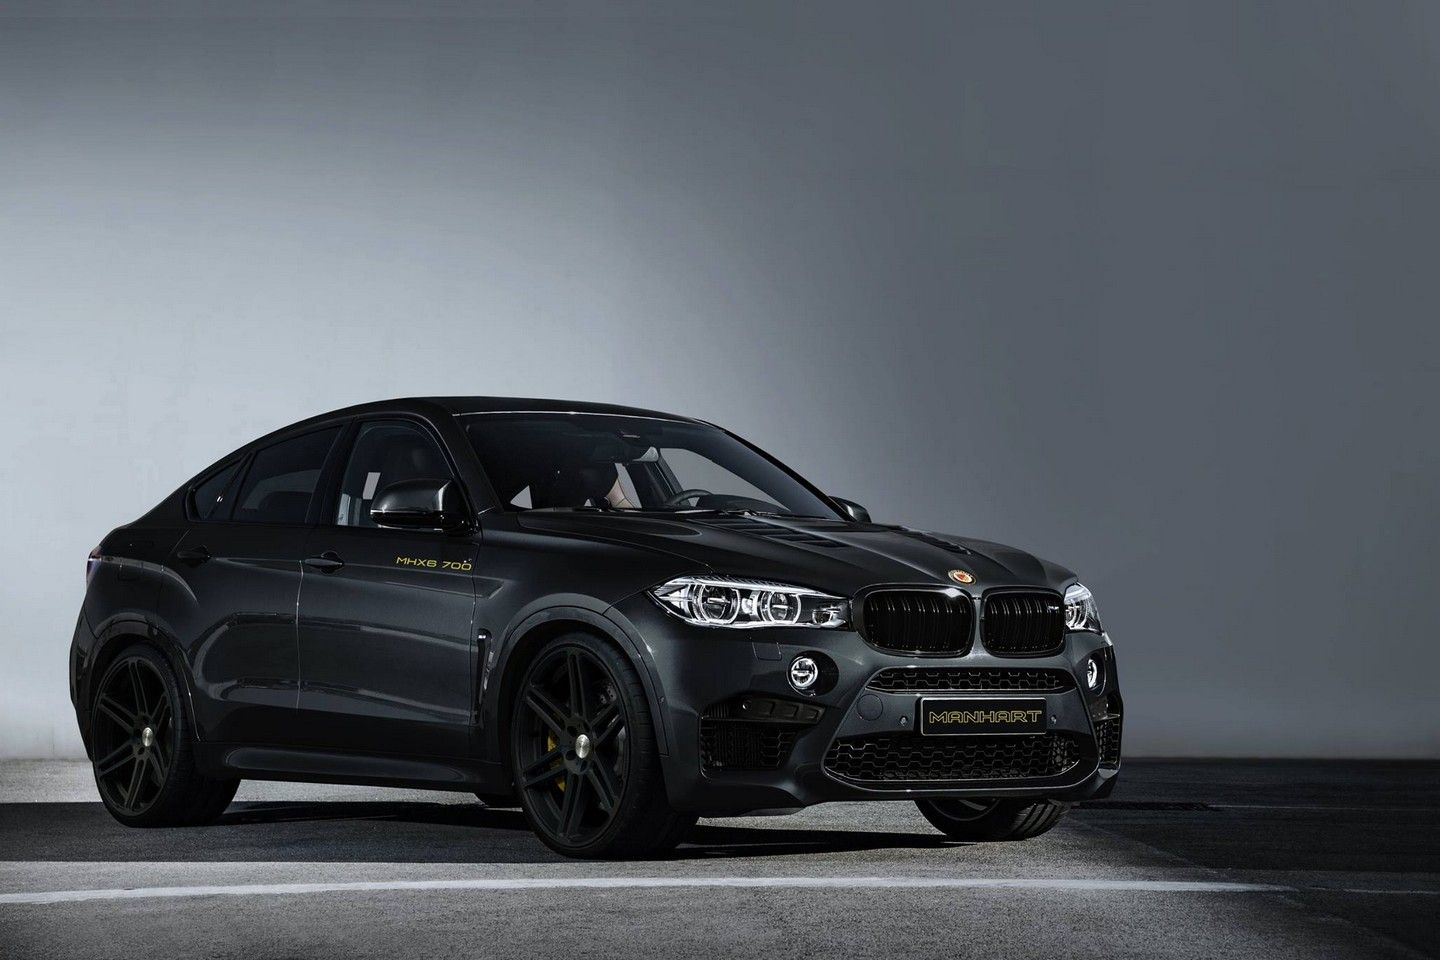 Manhart Boosts Bmw X6 M To 700 Horses One Day Cars Pinterest